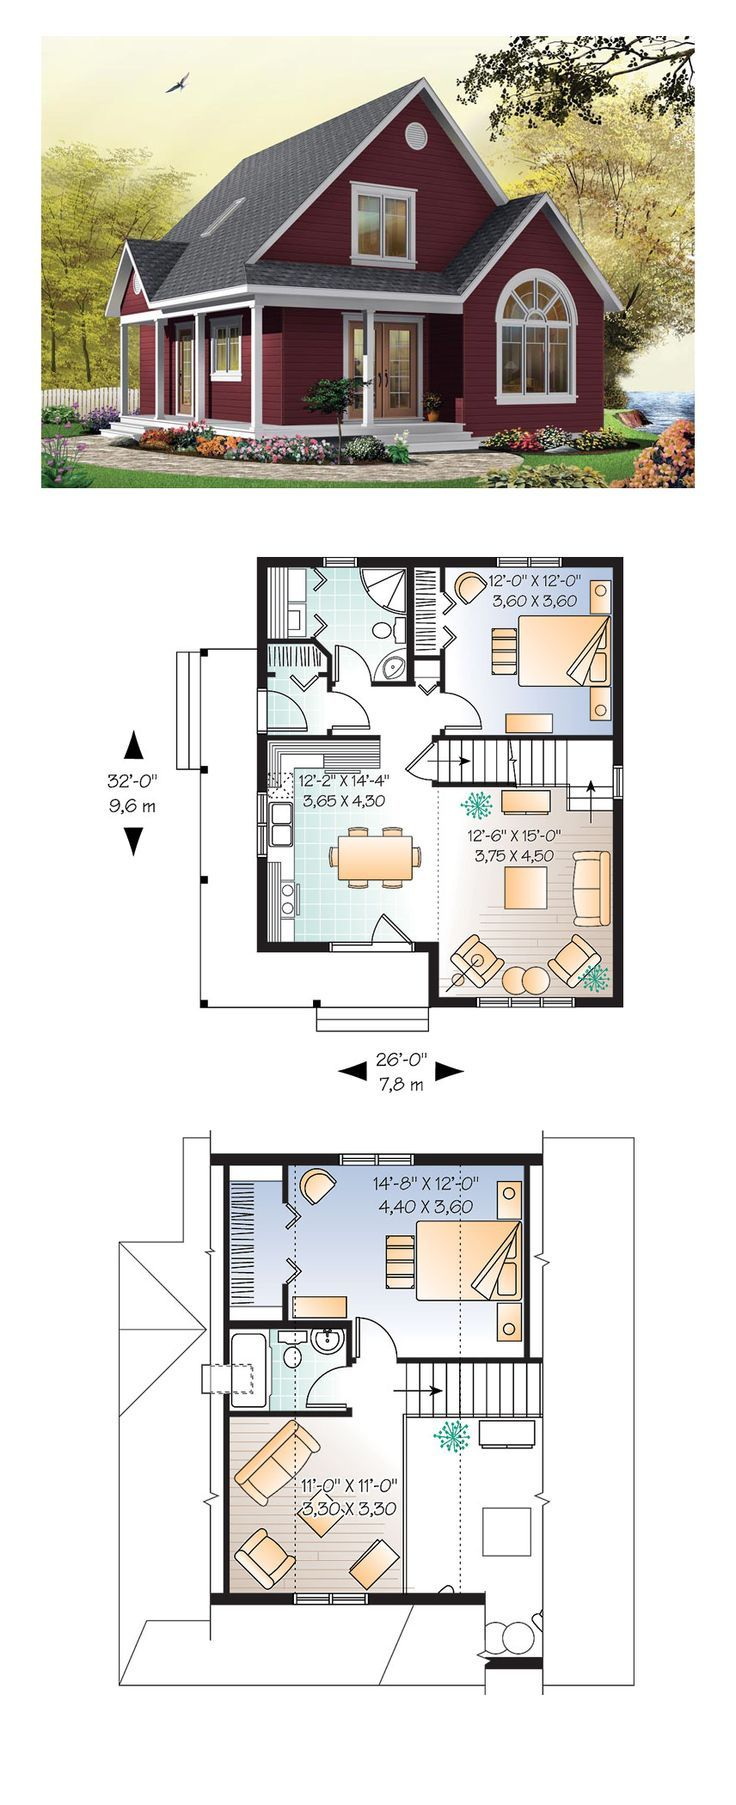 awesome Cottage Style COOL House Plan ID: chp-28554 | Total Living Area: 1226 sq. ft., 2... by http://www.dana-homedecor.xyz/tiny-homes/cottage-style-cool-house-plan-id-chp-28554-total-living-area-1226-sq-ft-2/